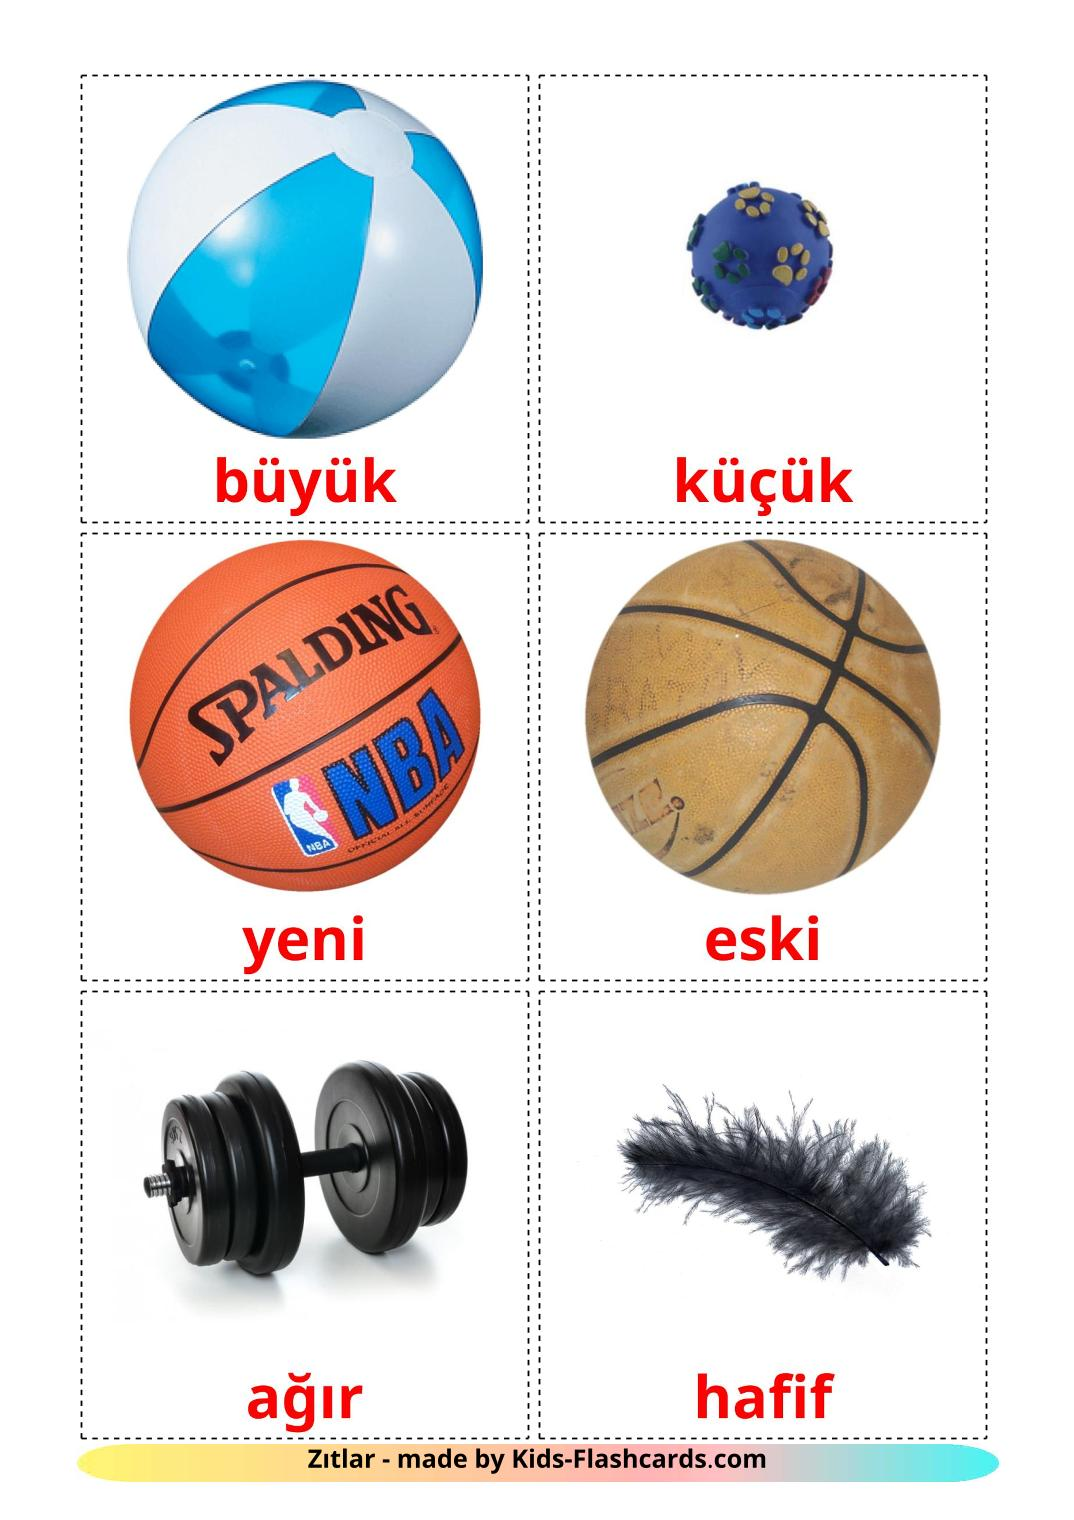 Opposites - 74 Free Printable turkish Flashcards